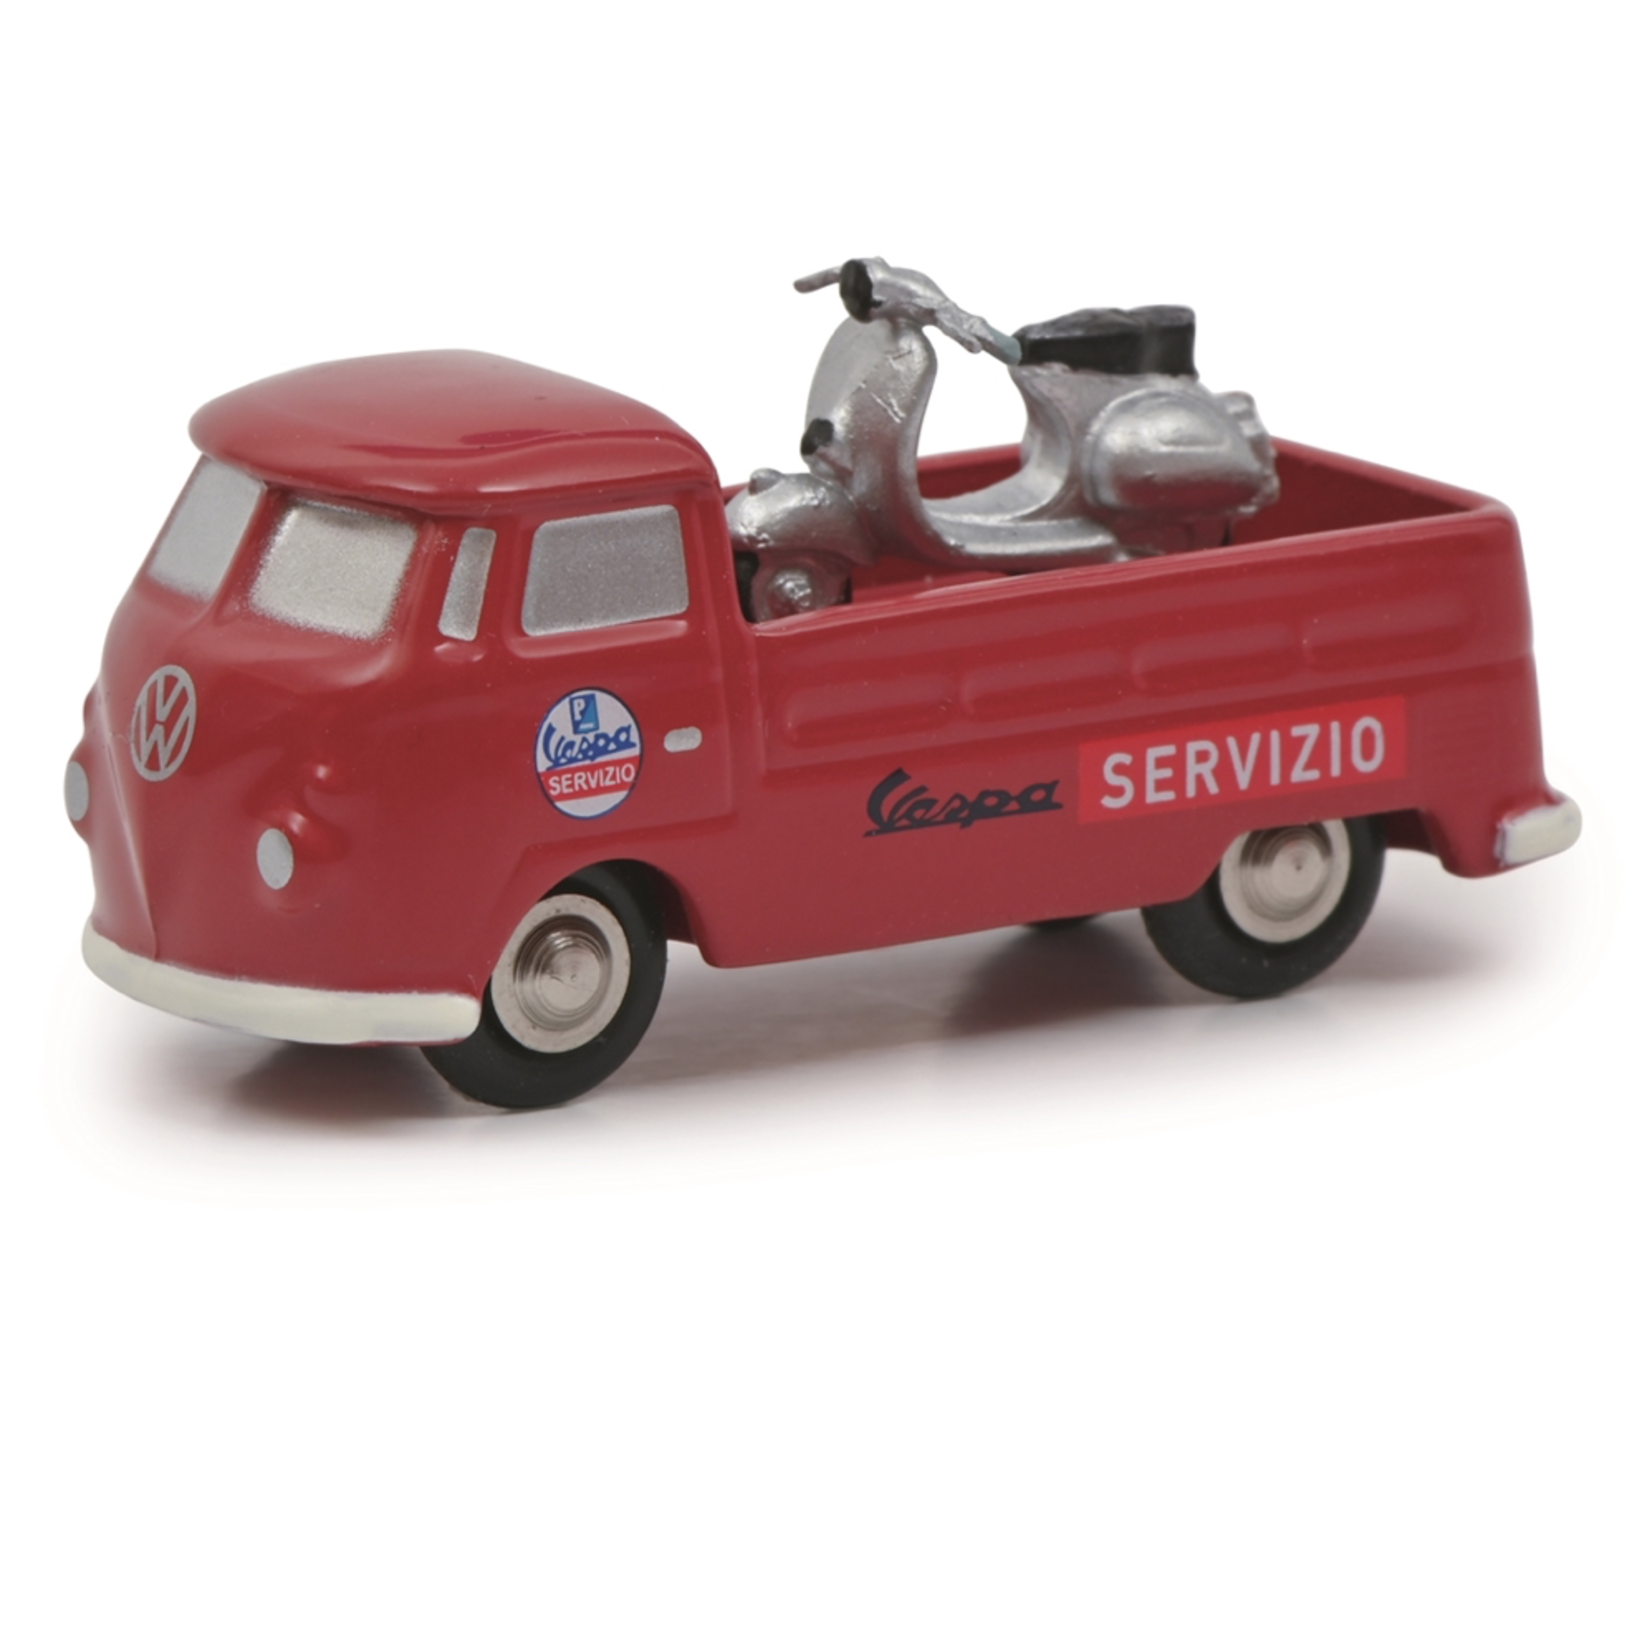 Lifestyle Toy, Schuco Vespa VW service truck T1b  (Limited 500 edition)